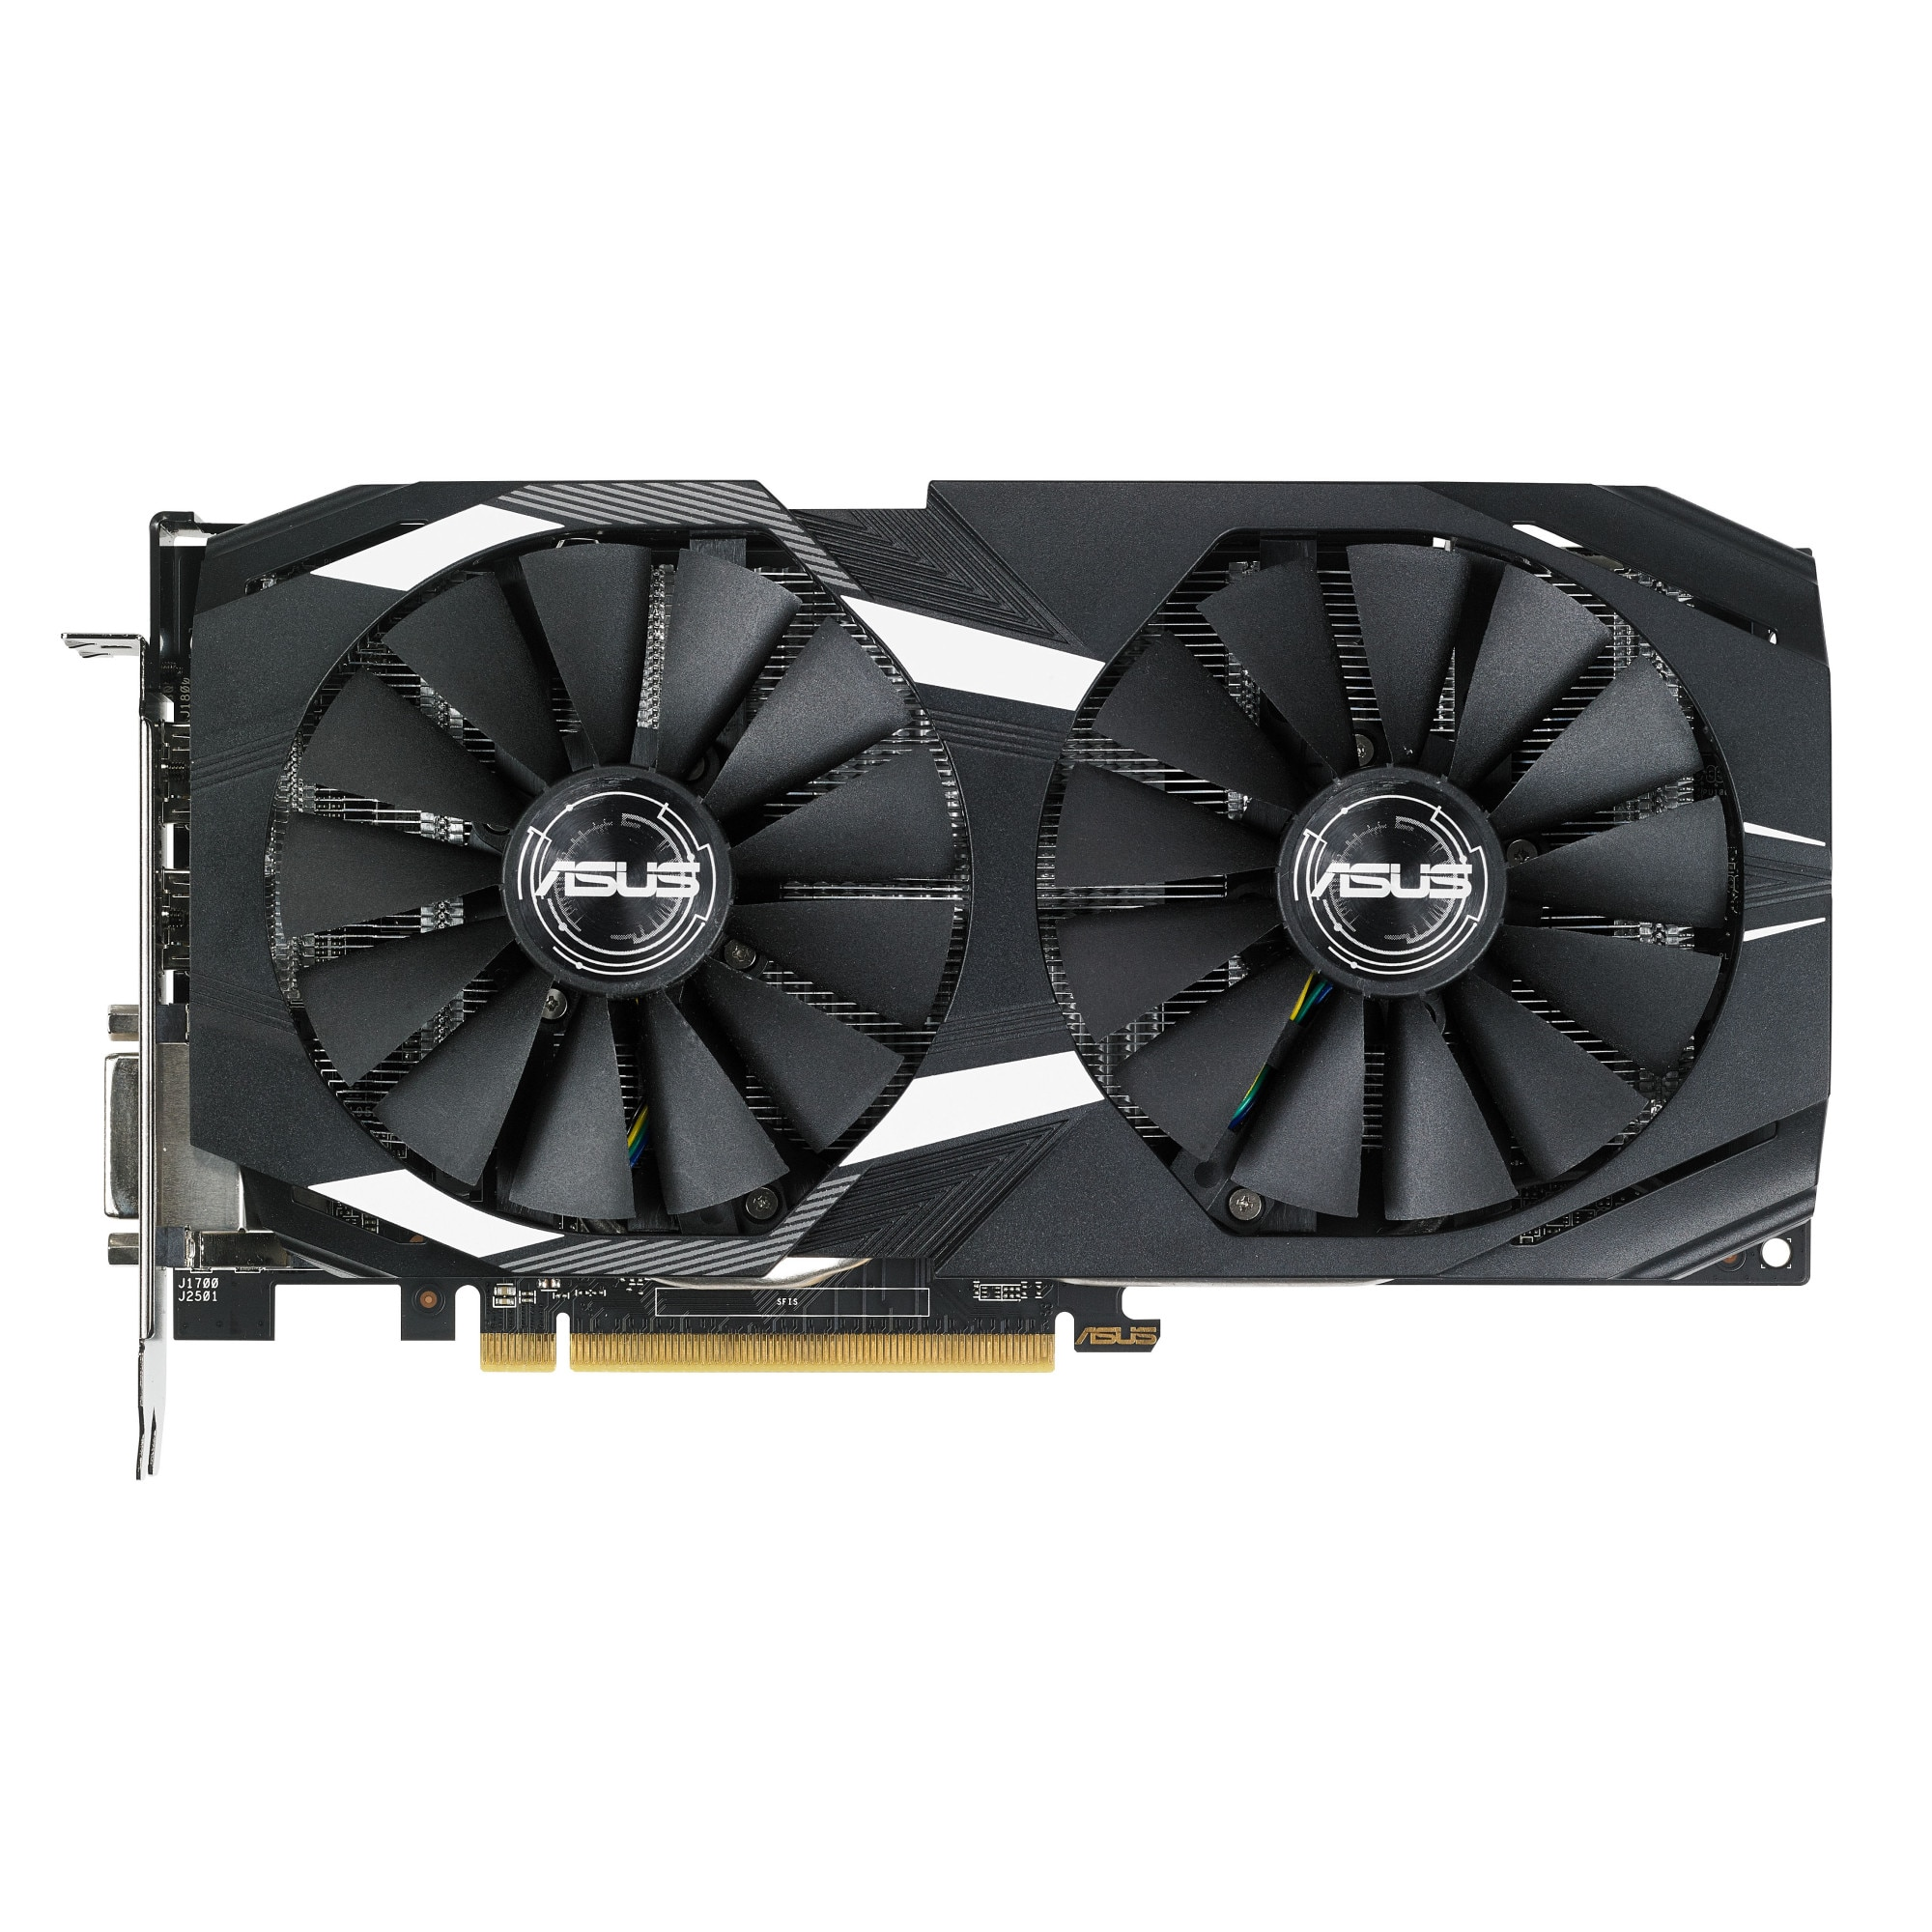 Fotografie Placa video Asus Radeon RX 580 Dual, 8GB, 256-bit